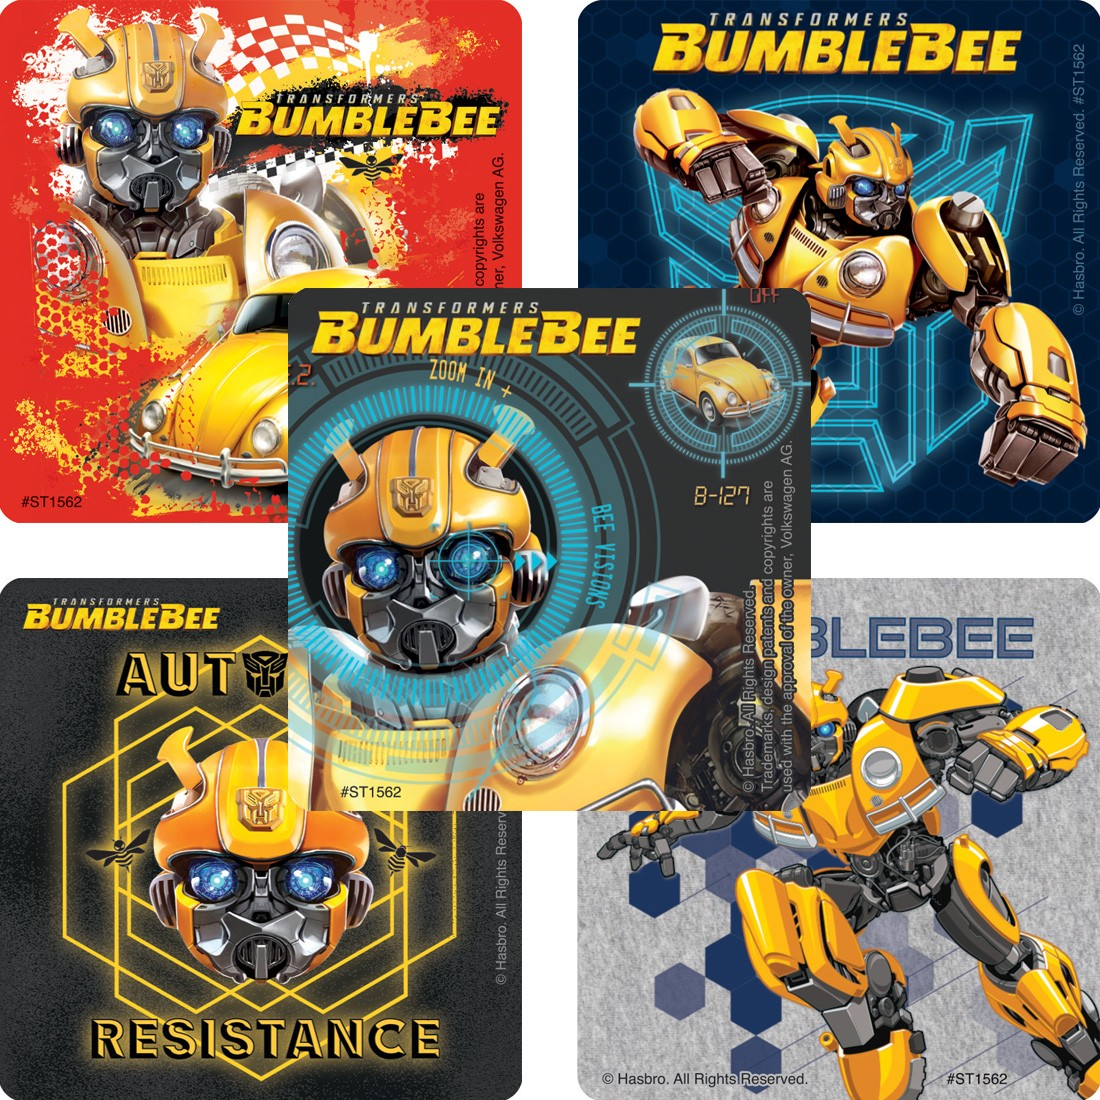 100 TRANSFORMERS BUMBLEBEE MOVIE  [image]